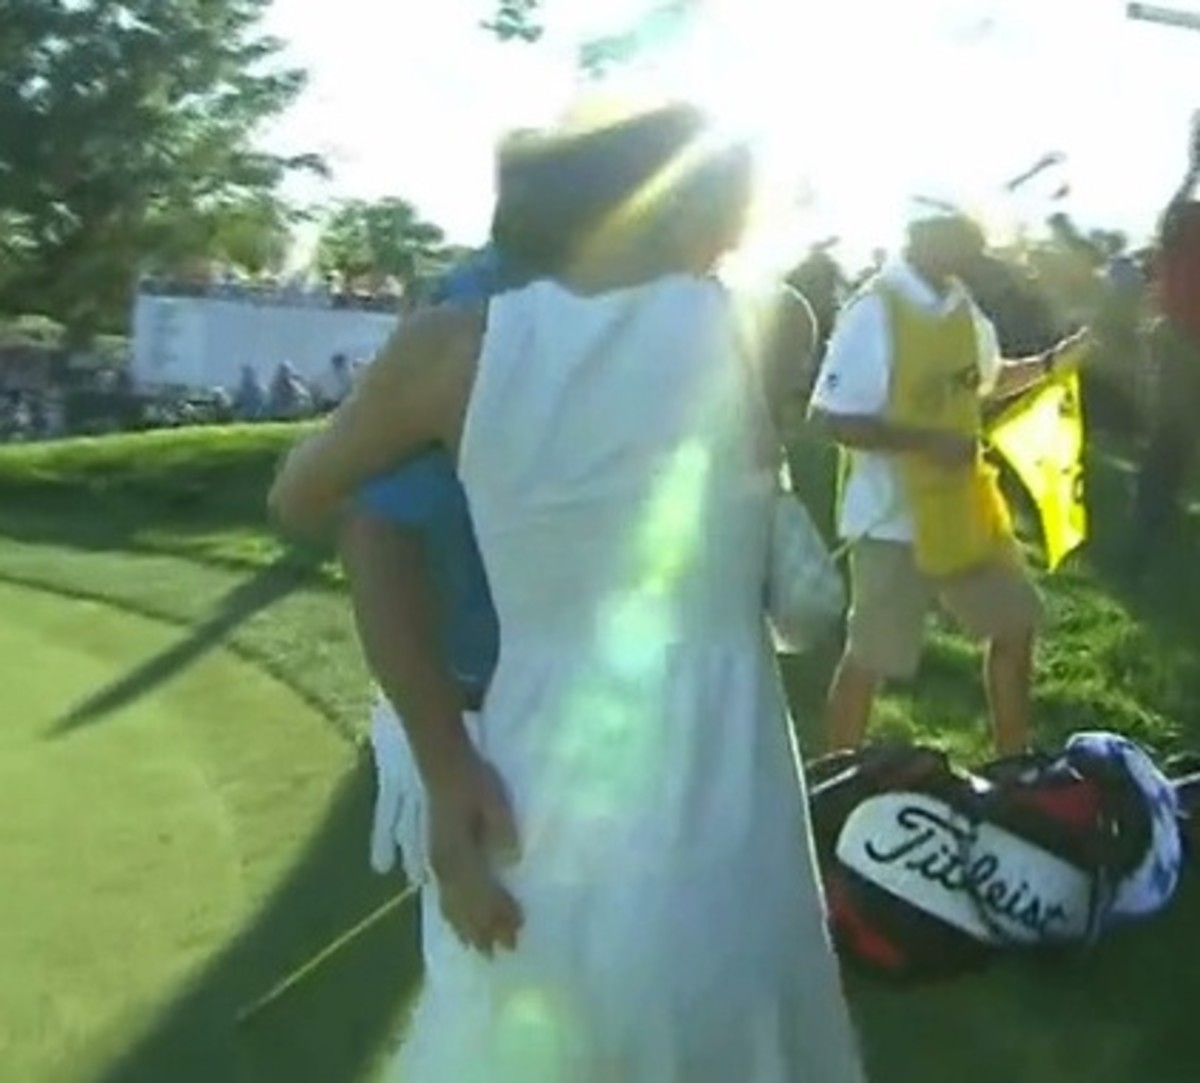 Jason Dufner pats his wife's butt after PGA Championship win